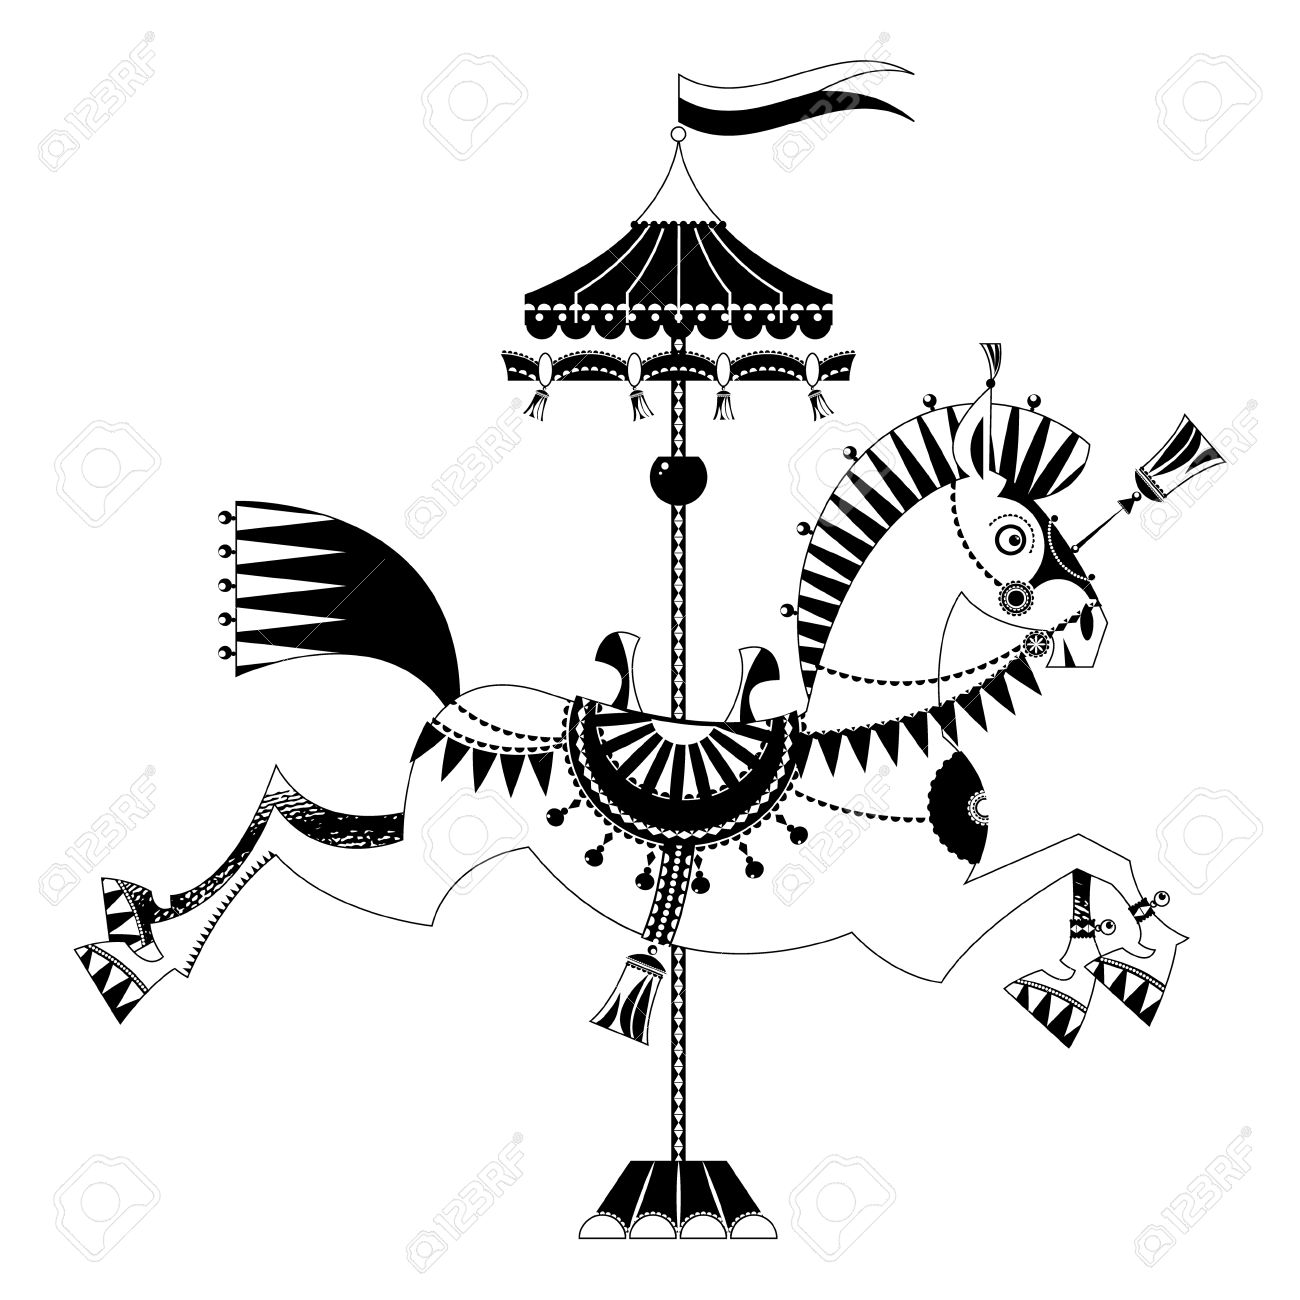 Vintage Carousel Horse. Black And White. Royalty Free Cliparts.